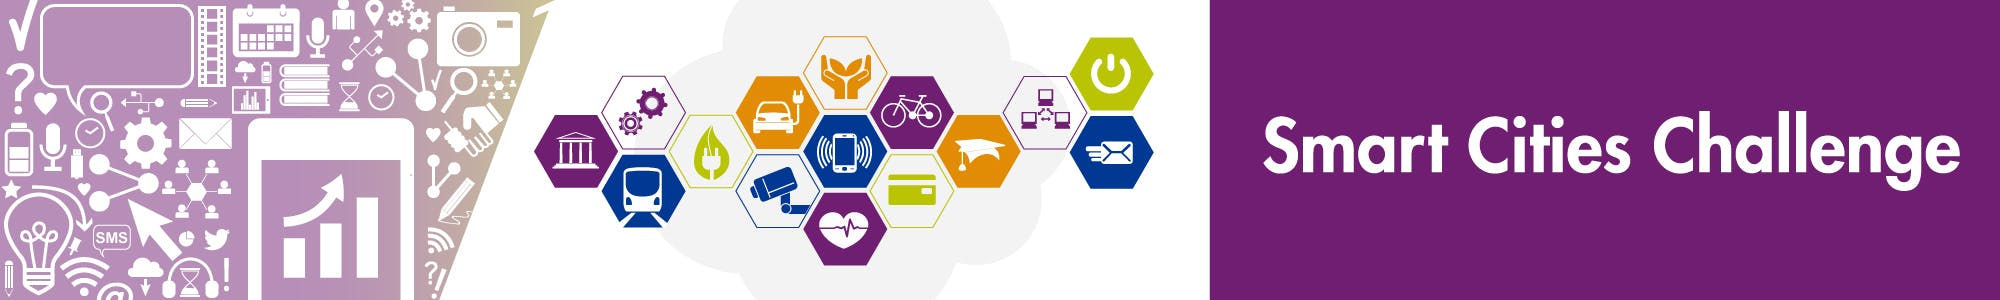 "Community engagement icons with City of Oshawa Smart Cities Challenge logo beside ""Smart Cities Challenge"""